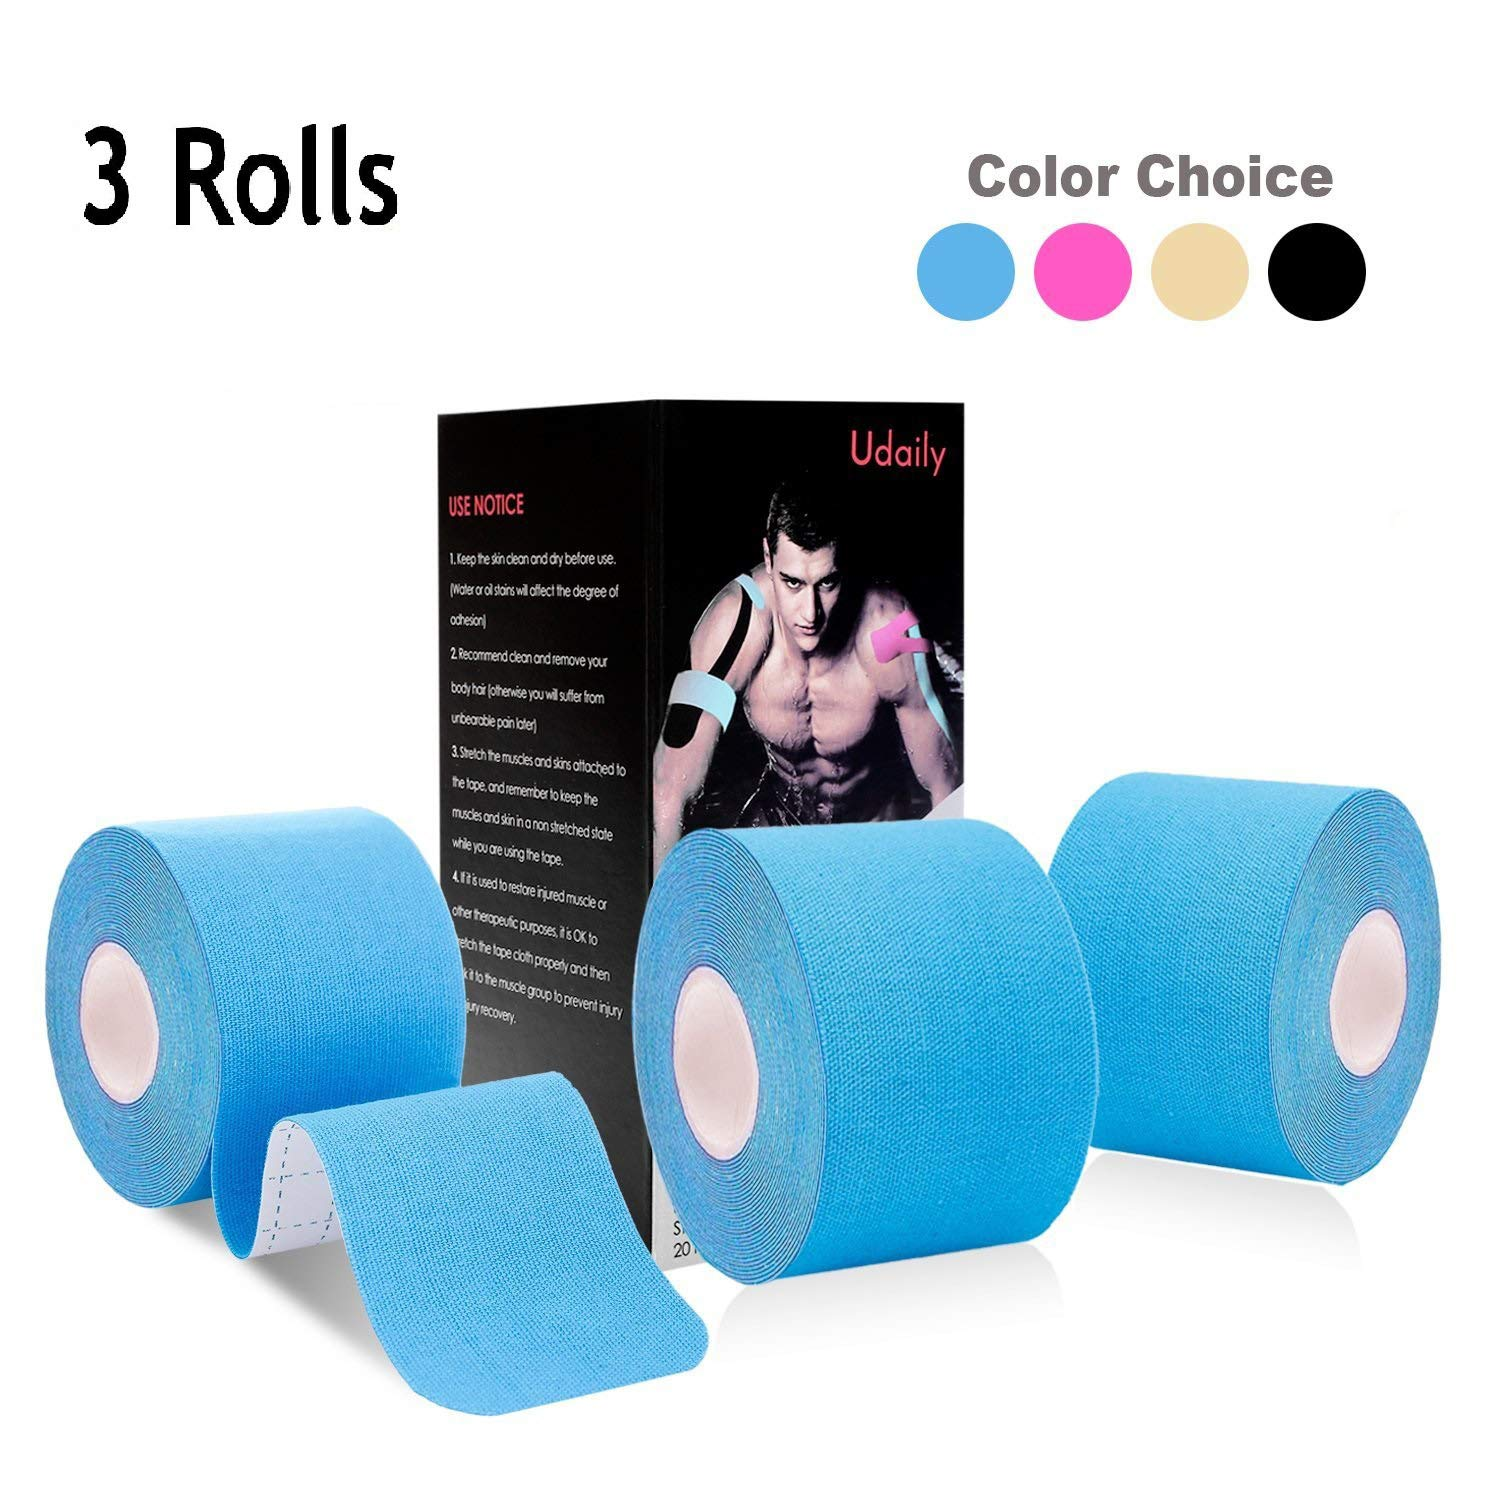 Udaily Kinesiology Tape Precut (3 Rolls Pack), Elastic Therapeutic Sports Tape for Knee Shoulder and Elbow, Breathable, Water Resistant, Latex Free